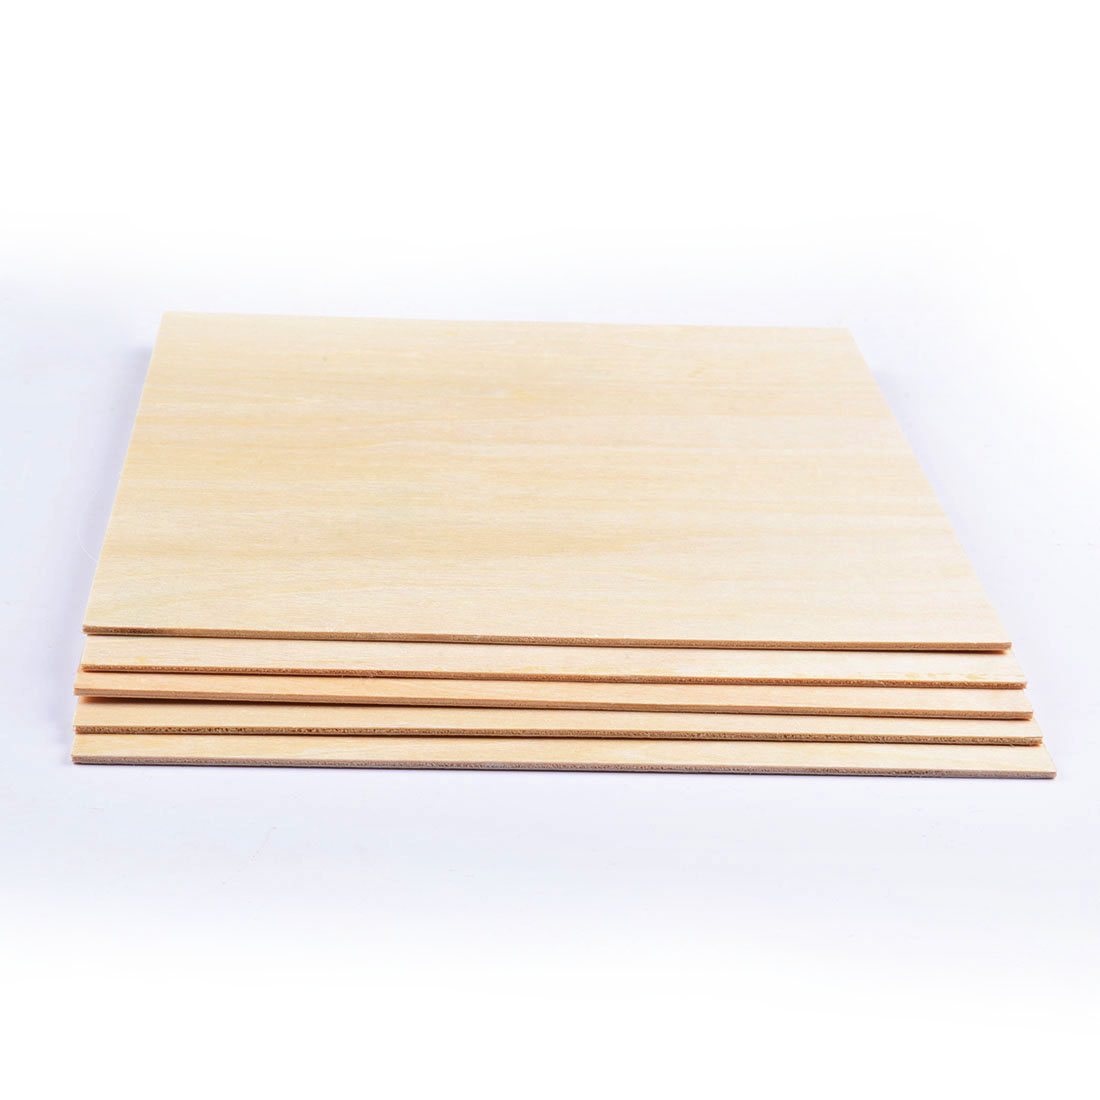 5pcs 200x200x2mm Unfinished Craft Basswood Wooden Sheets For DIY Model Making & Crafts